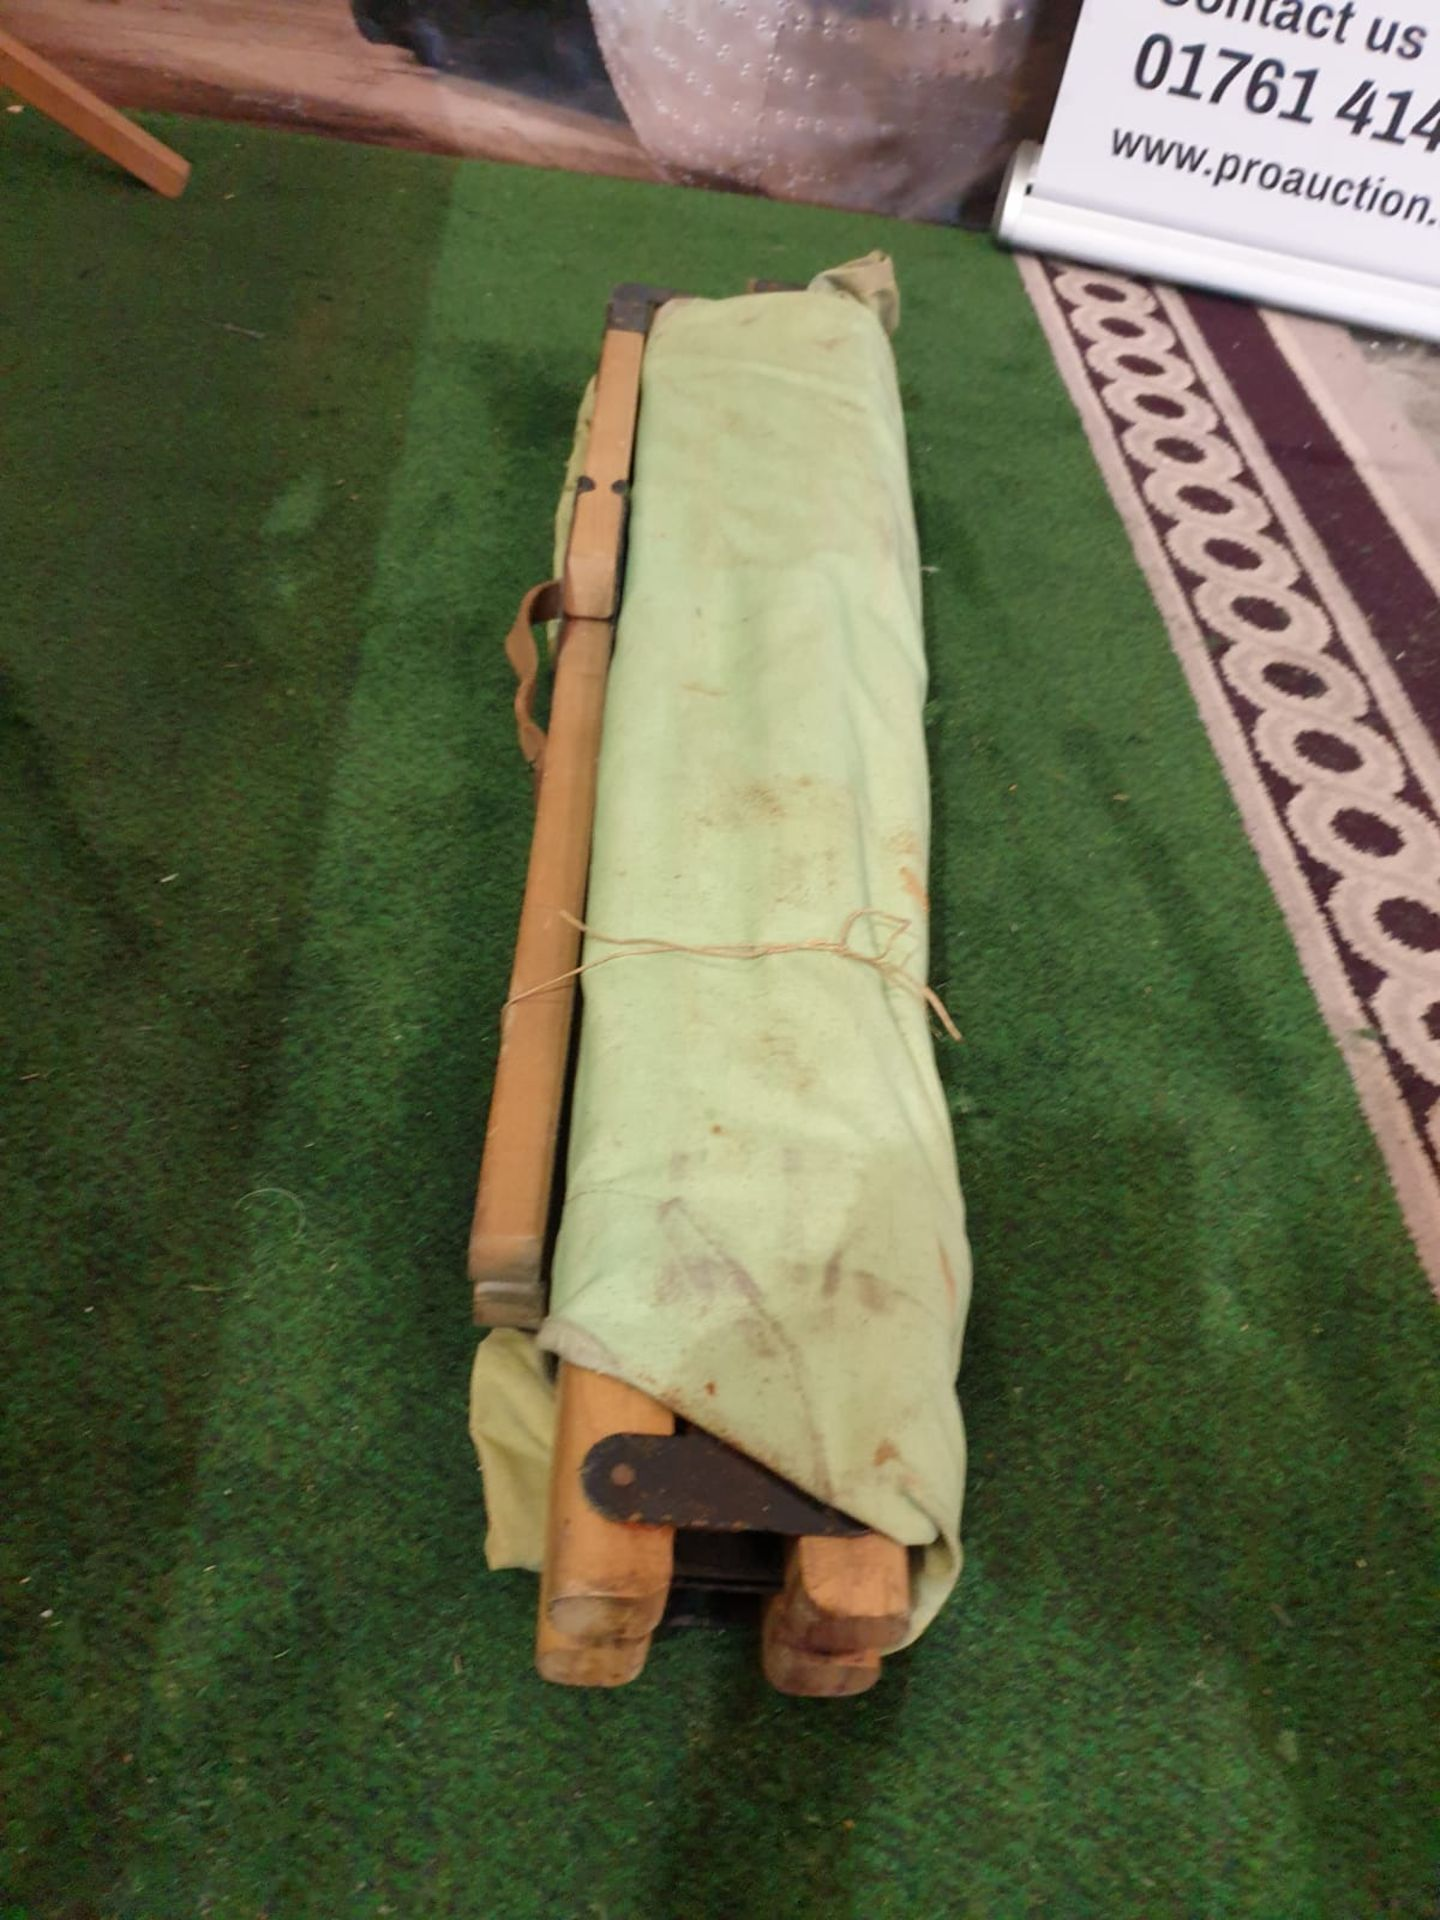 3 x Vintage WWII Wood & Canvas Medical Stretcher Reclaimed vintage WW2 British army medical - Image 4 of 4